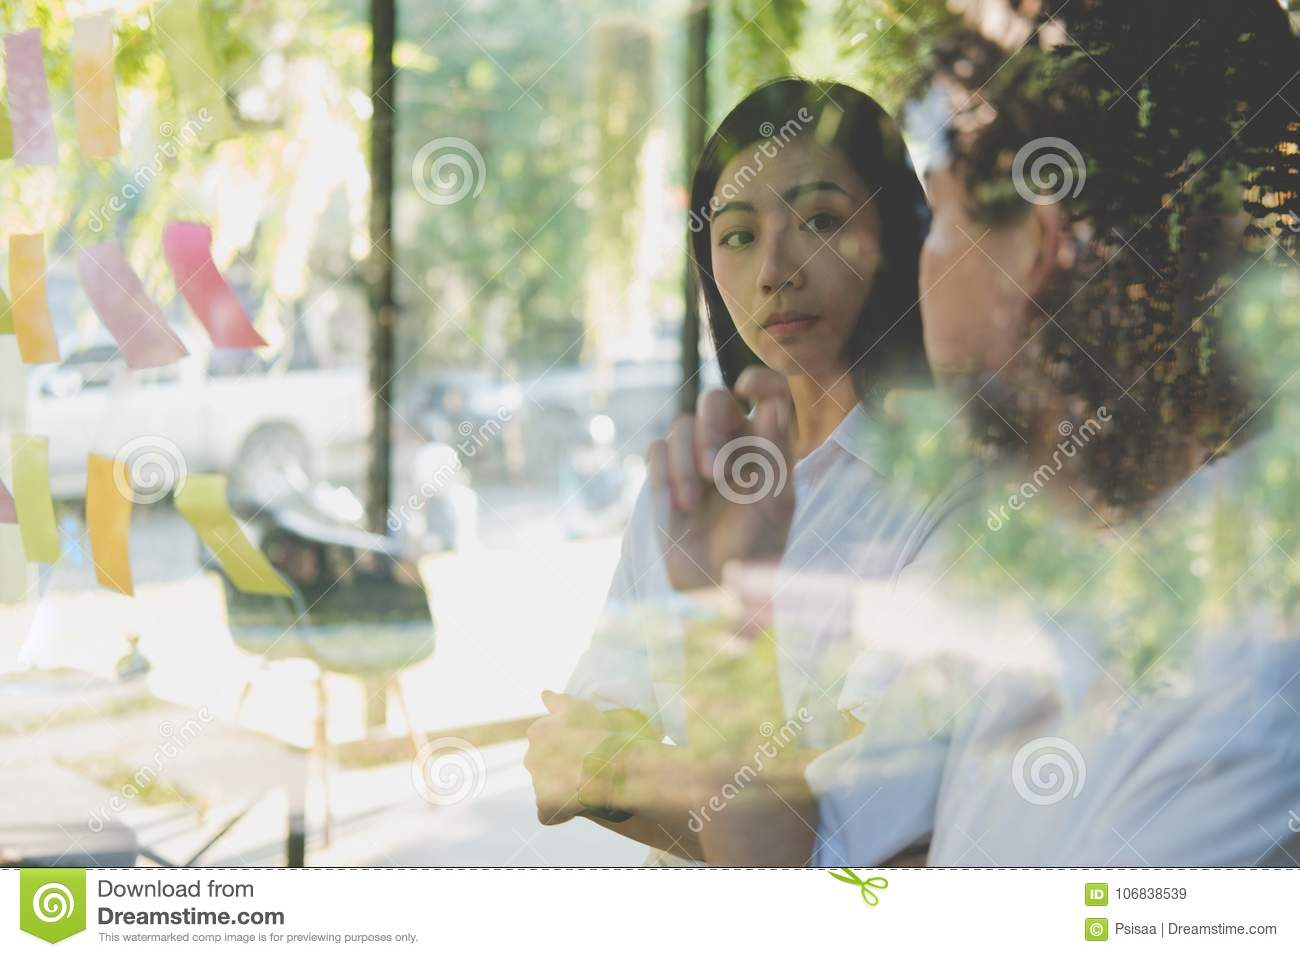 man & woman discussing creative idea with adhesive notes on glass wall at workplace. Sticky note paper reminder schedule